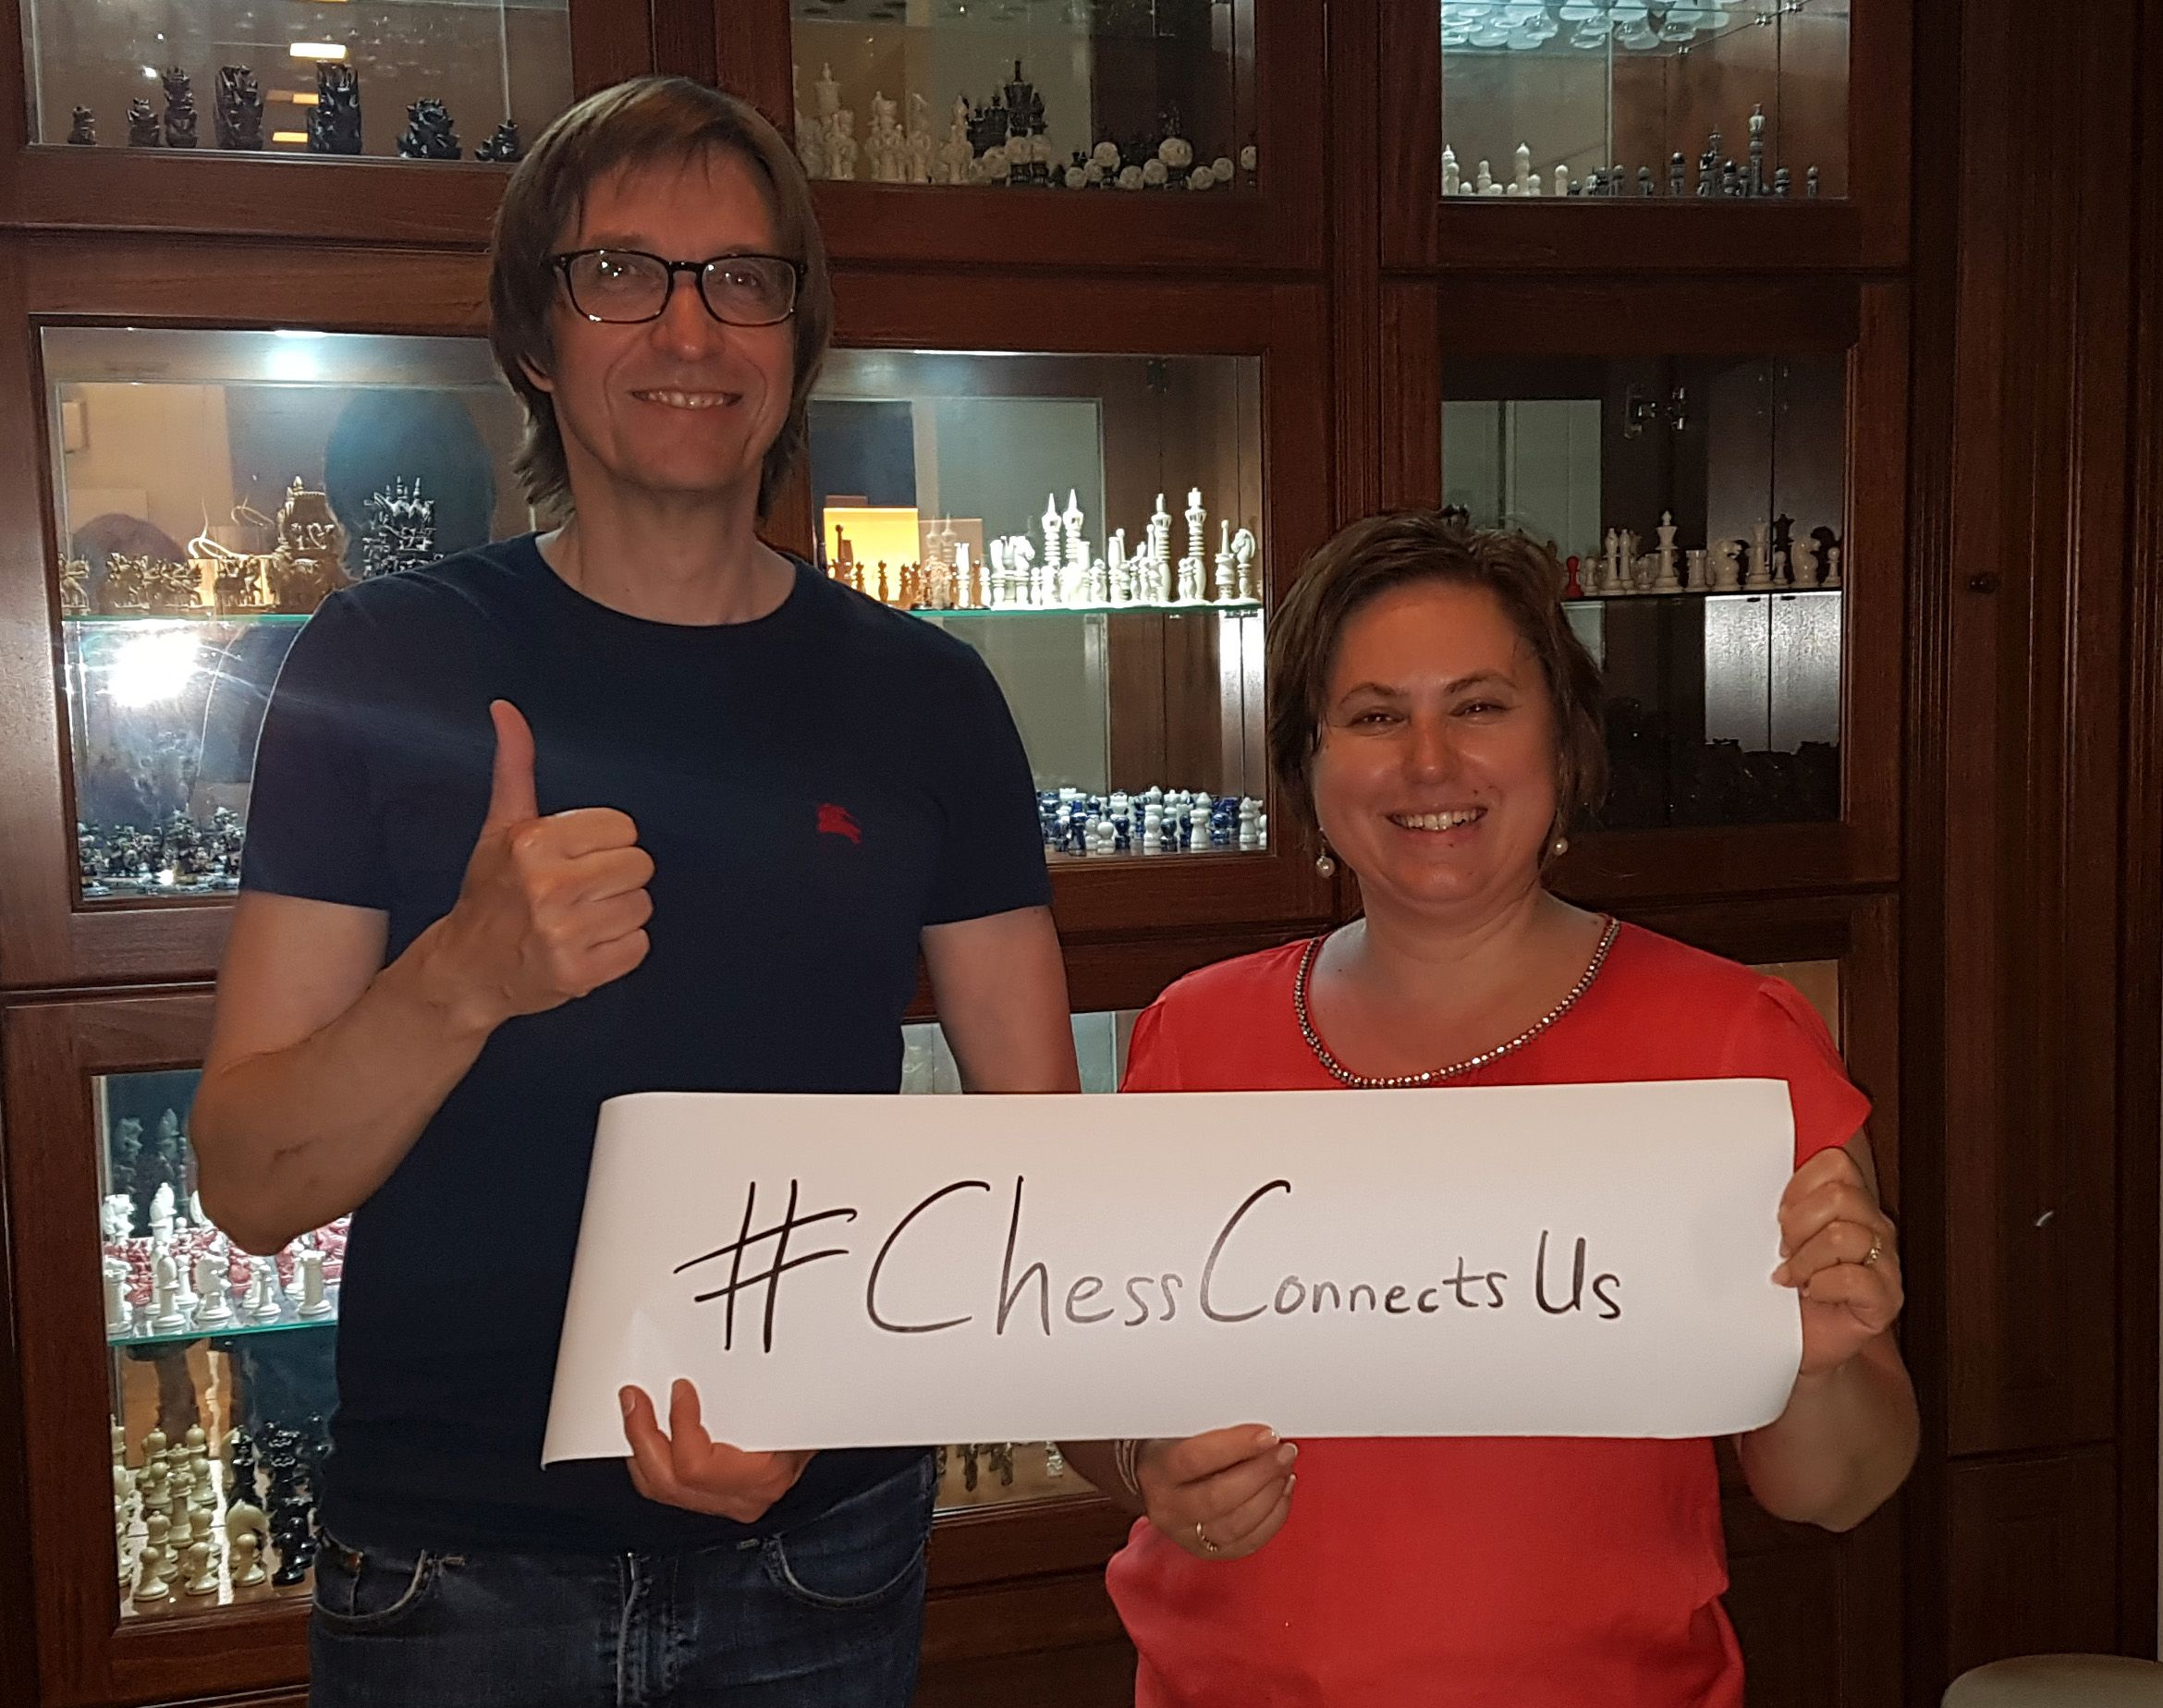 """Stefan Kindermann and Judit Polgar, the """"Queen of Chess"""" (Foto: private)"""